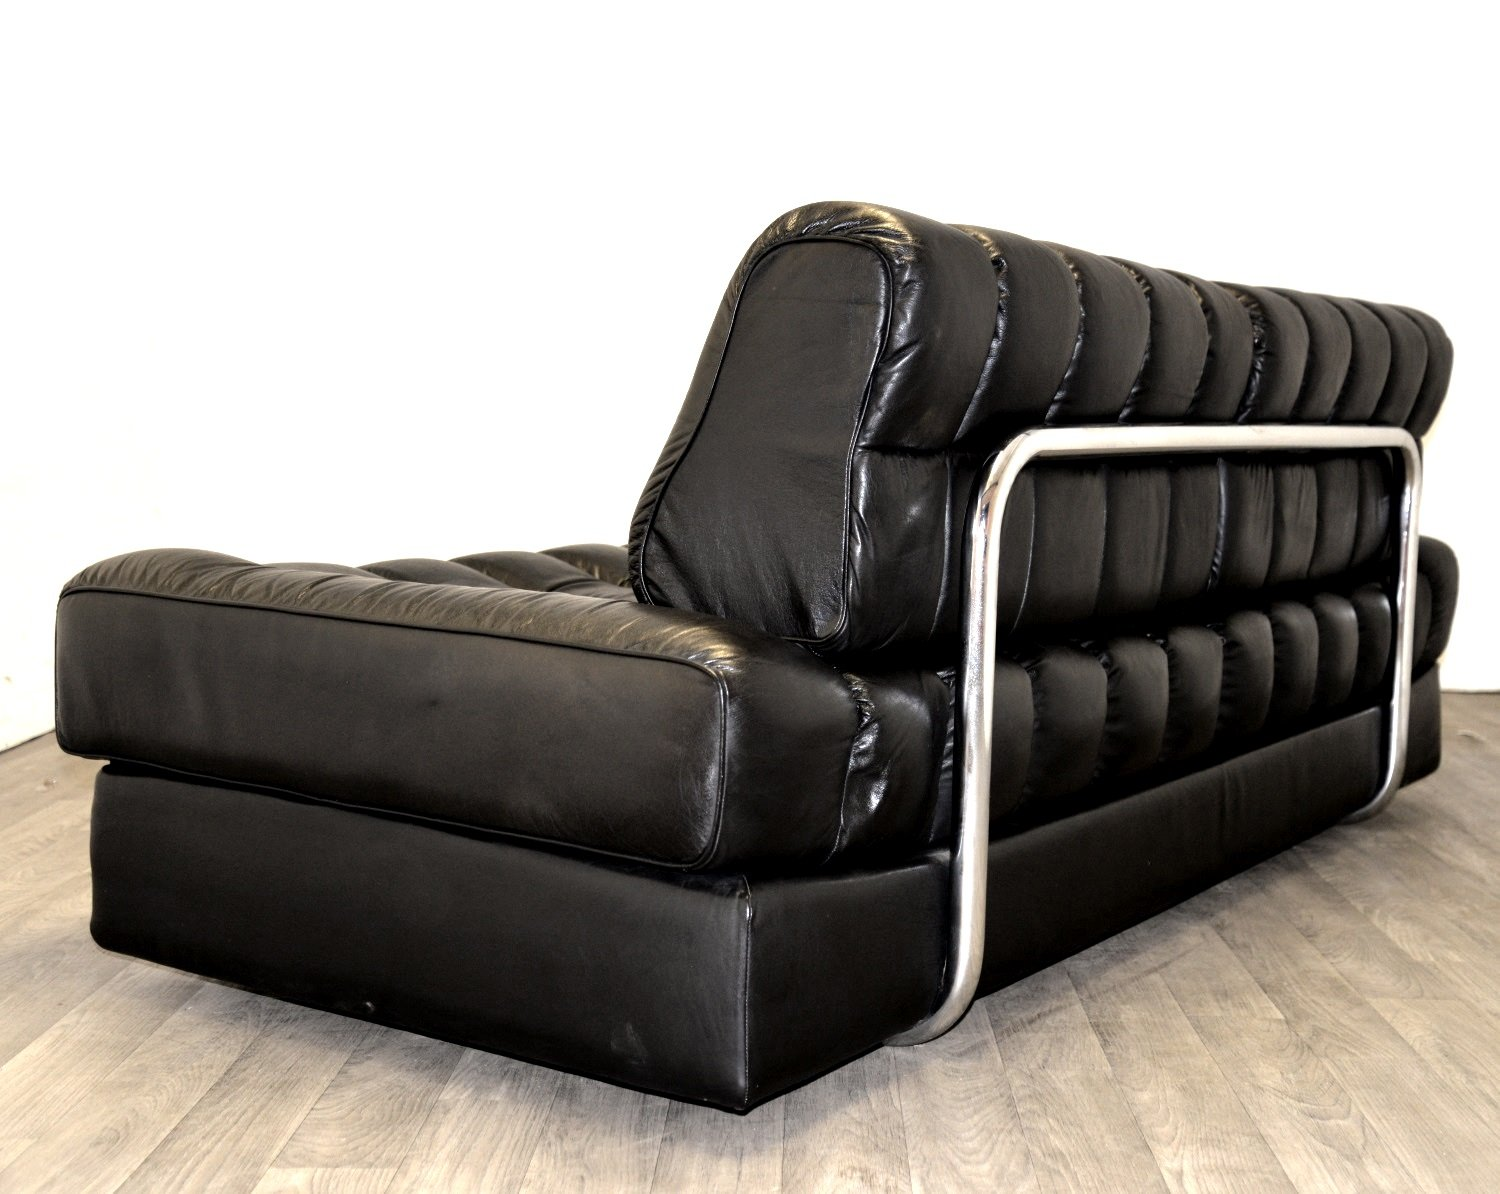 schwarzes ds 85 leder schlafsofa von de sede 1960er bei pamono kaufen. Black Bedroom Furniture Sets. Home Design Ideas